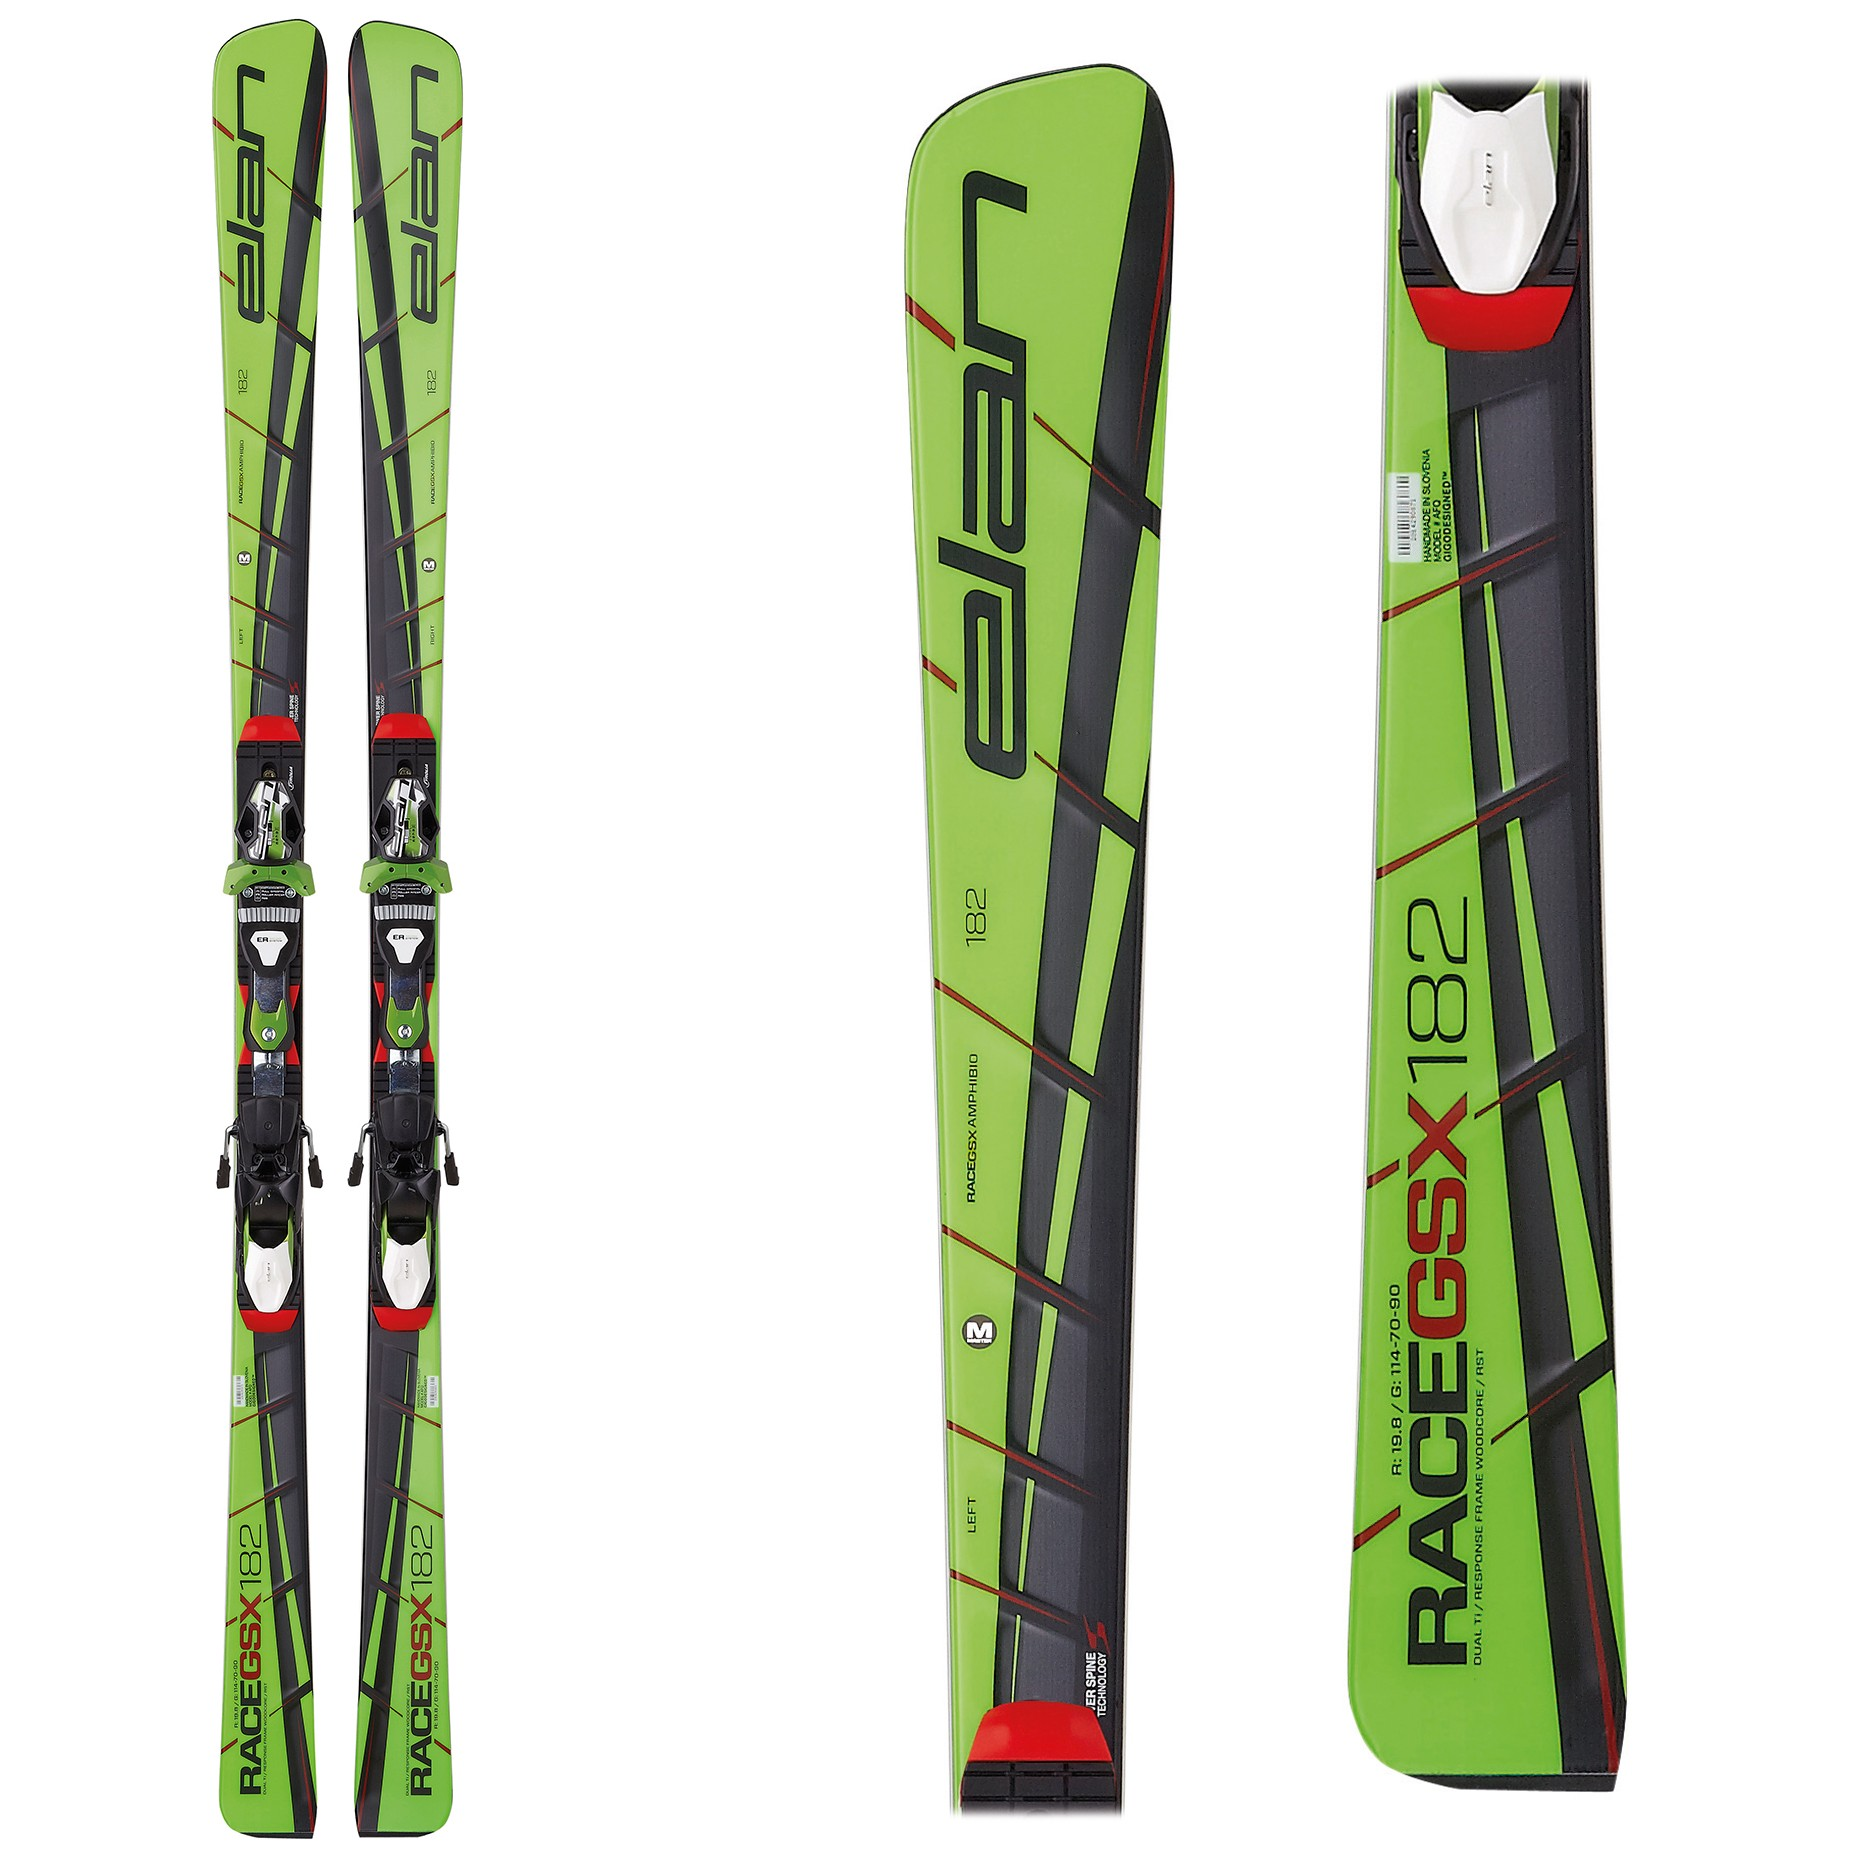 Elan GSX MASTER Plate, Racing GS skis, 2017